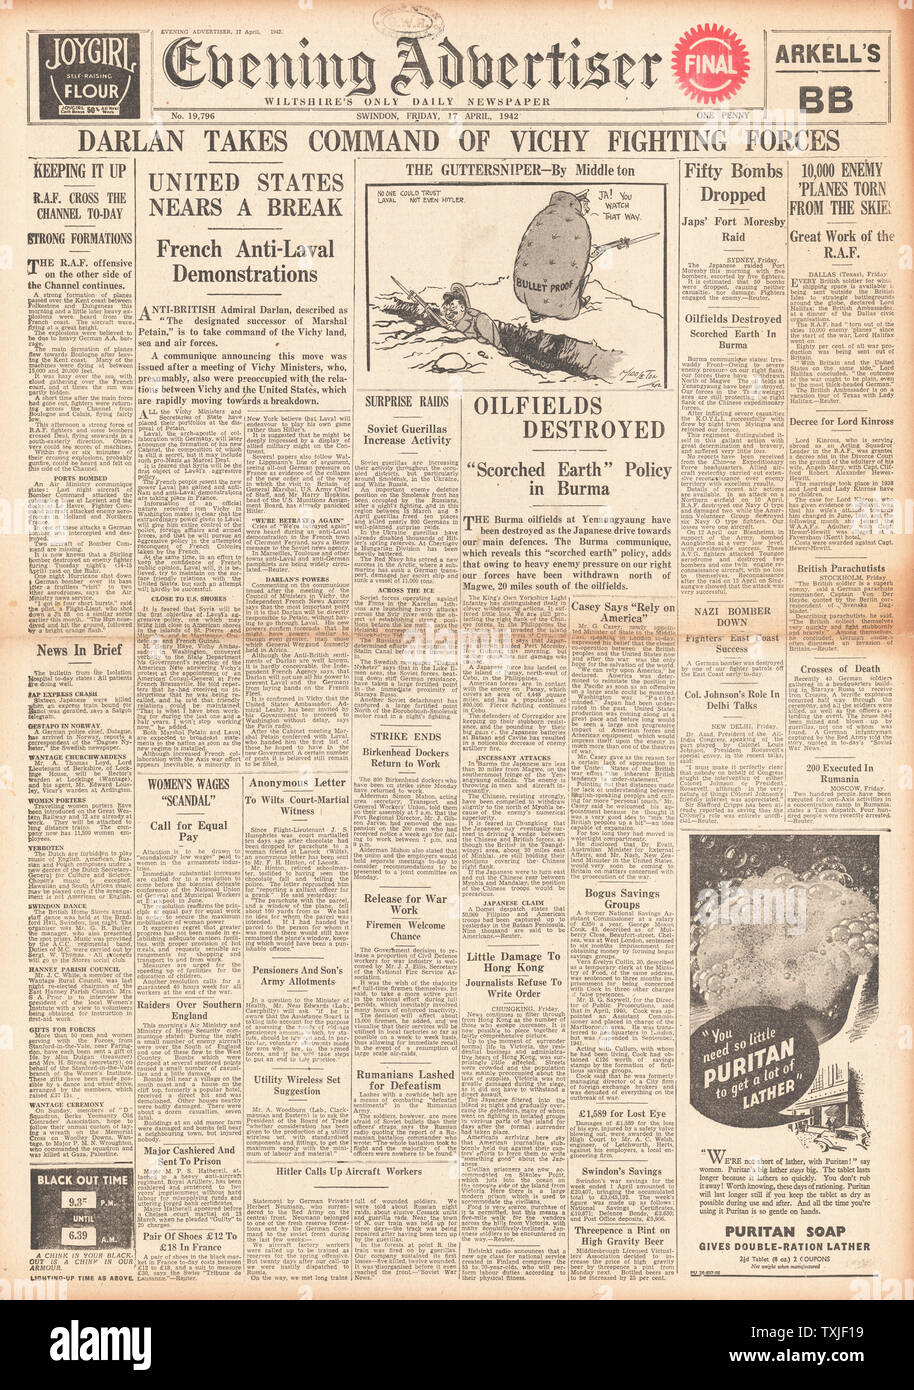 Admiral Breakdown Number >> 1942 Front Page Evening Advertiser Admiral Darlan Takes